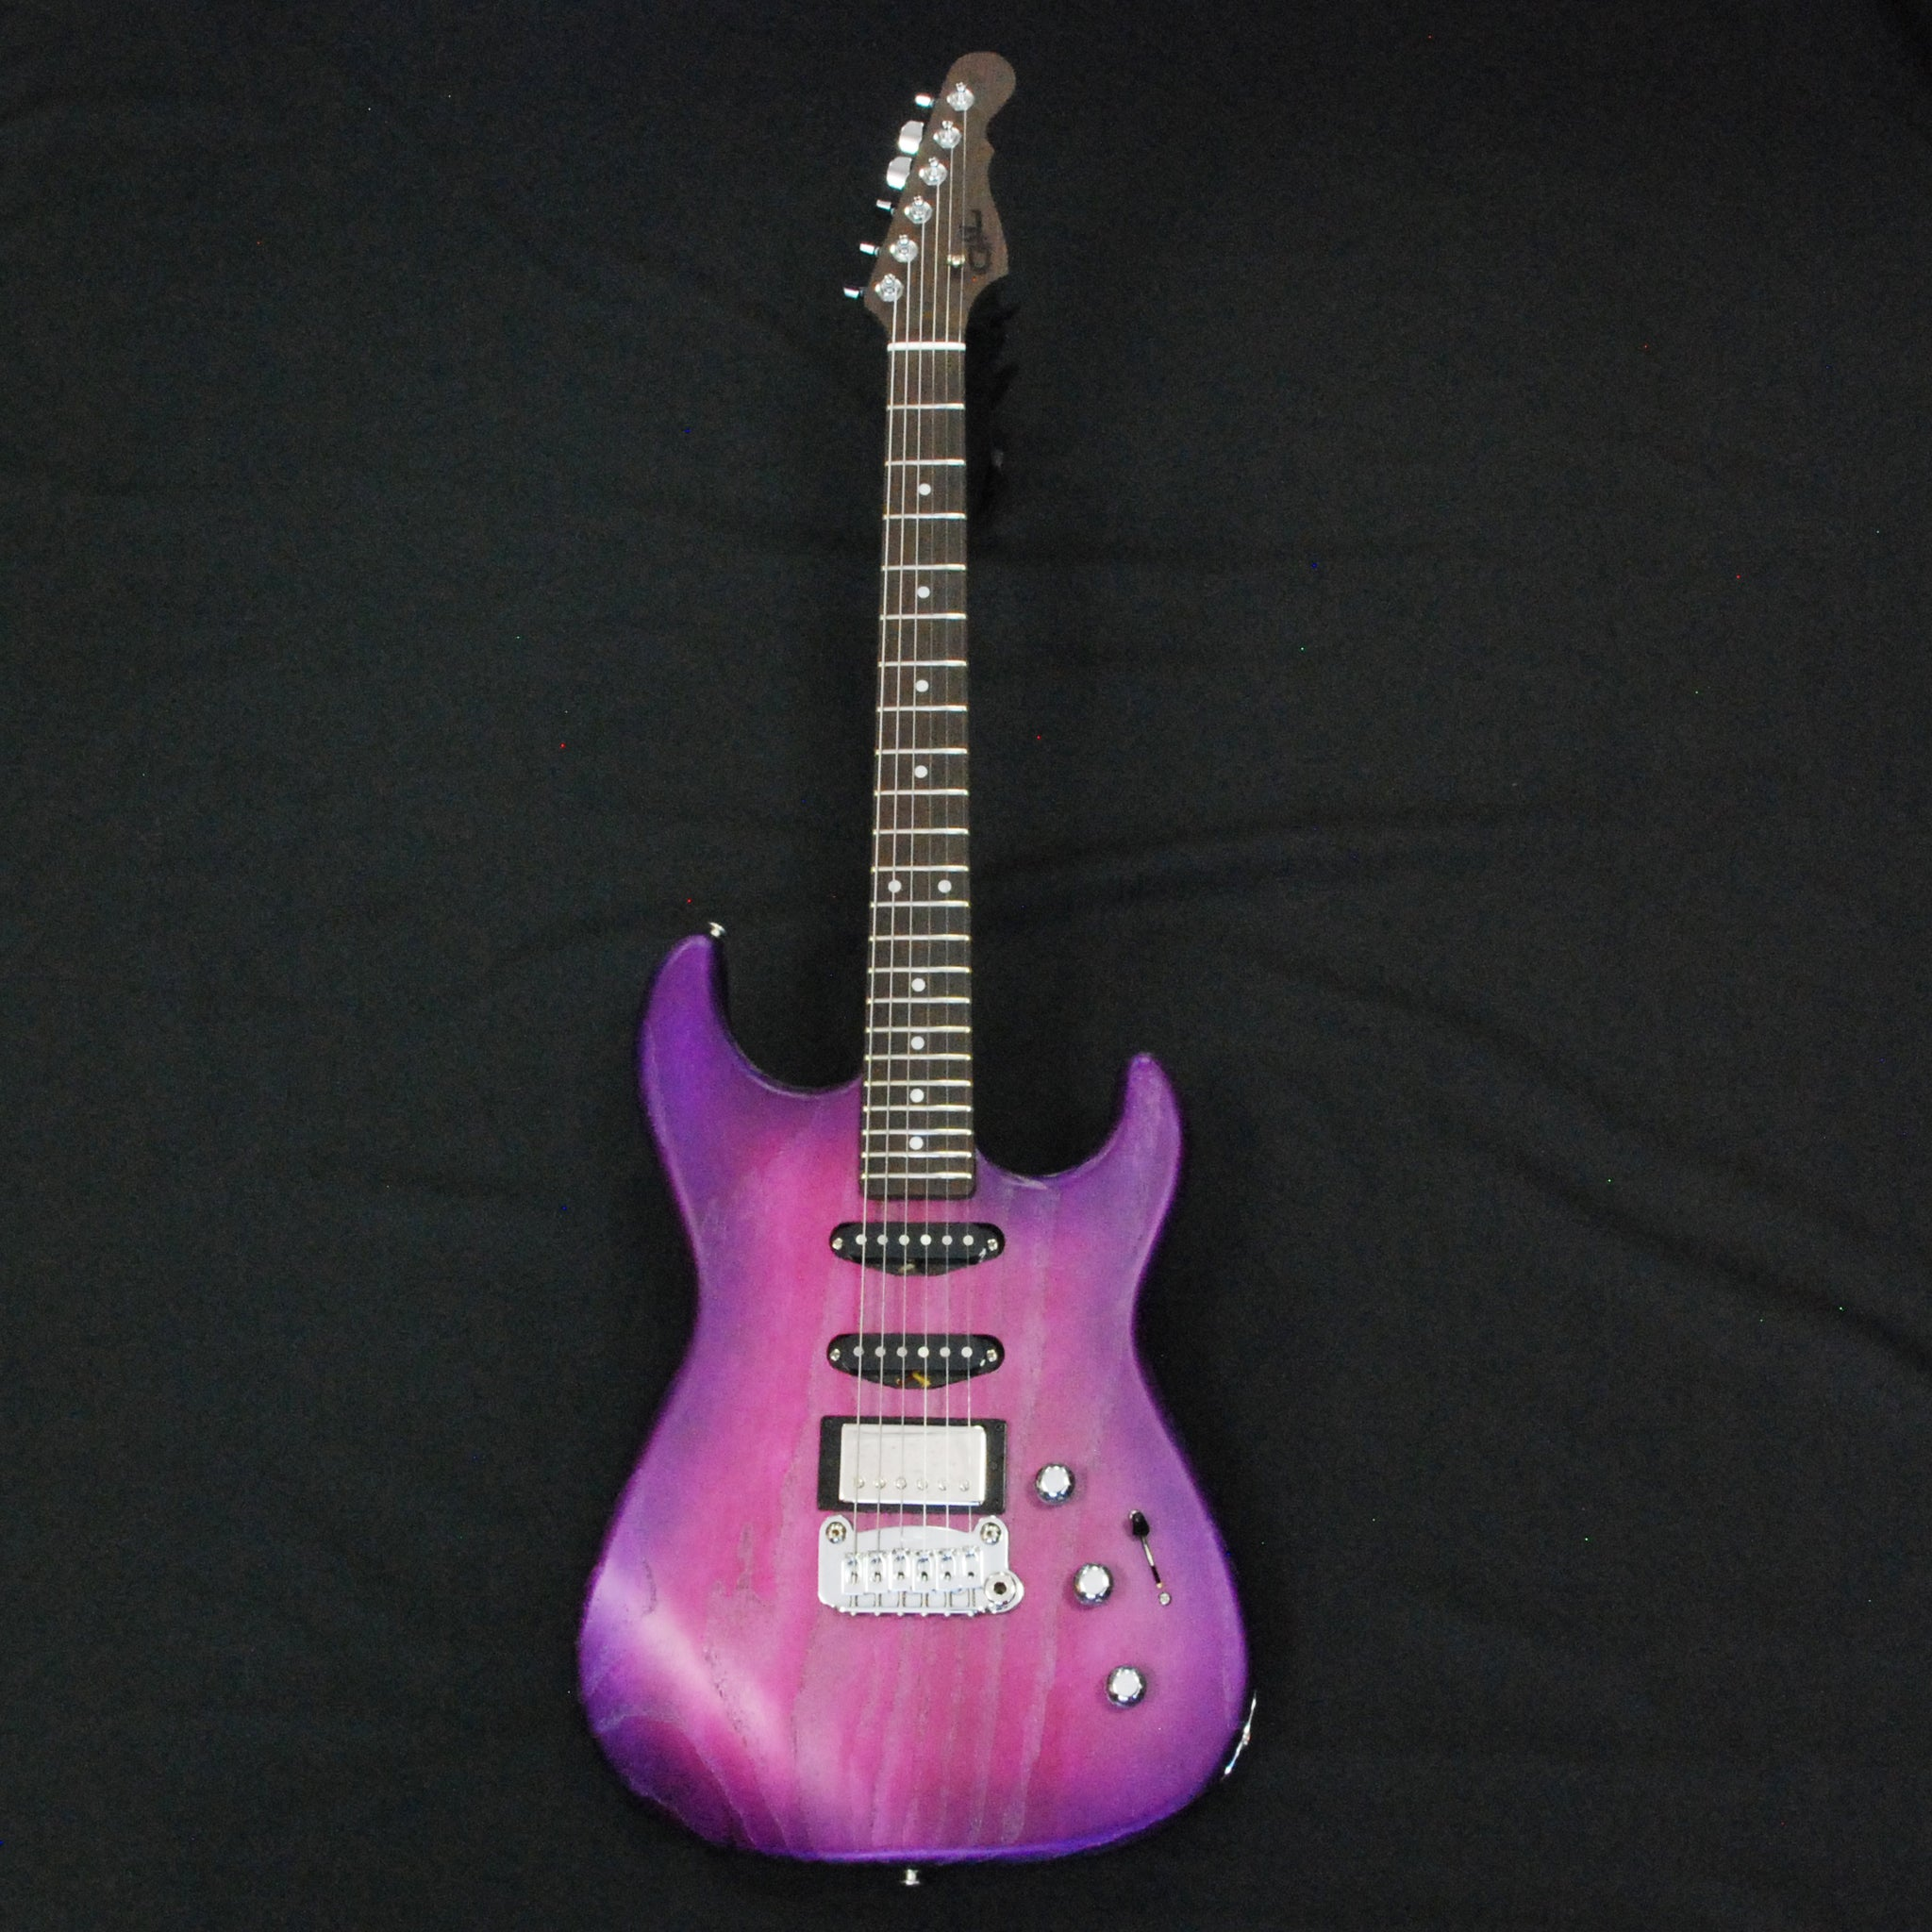 Shop online for G&L Custom Shop Legacy HSS RMC Magenta Ice CS1905005 today. Now available for purchase from Midlothian Music of Orland Park, Illinois, USA